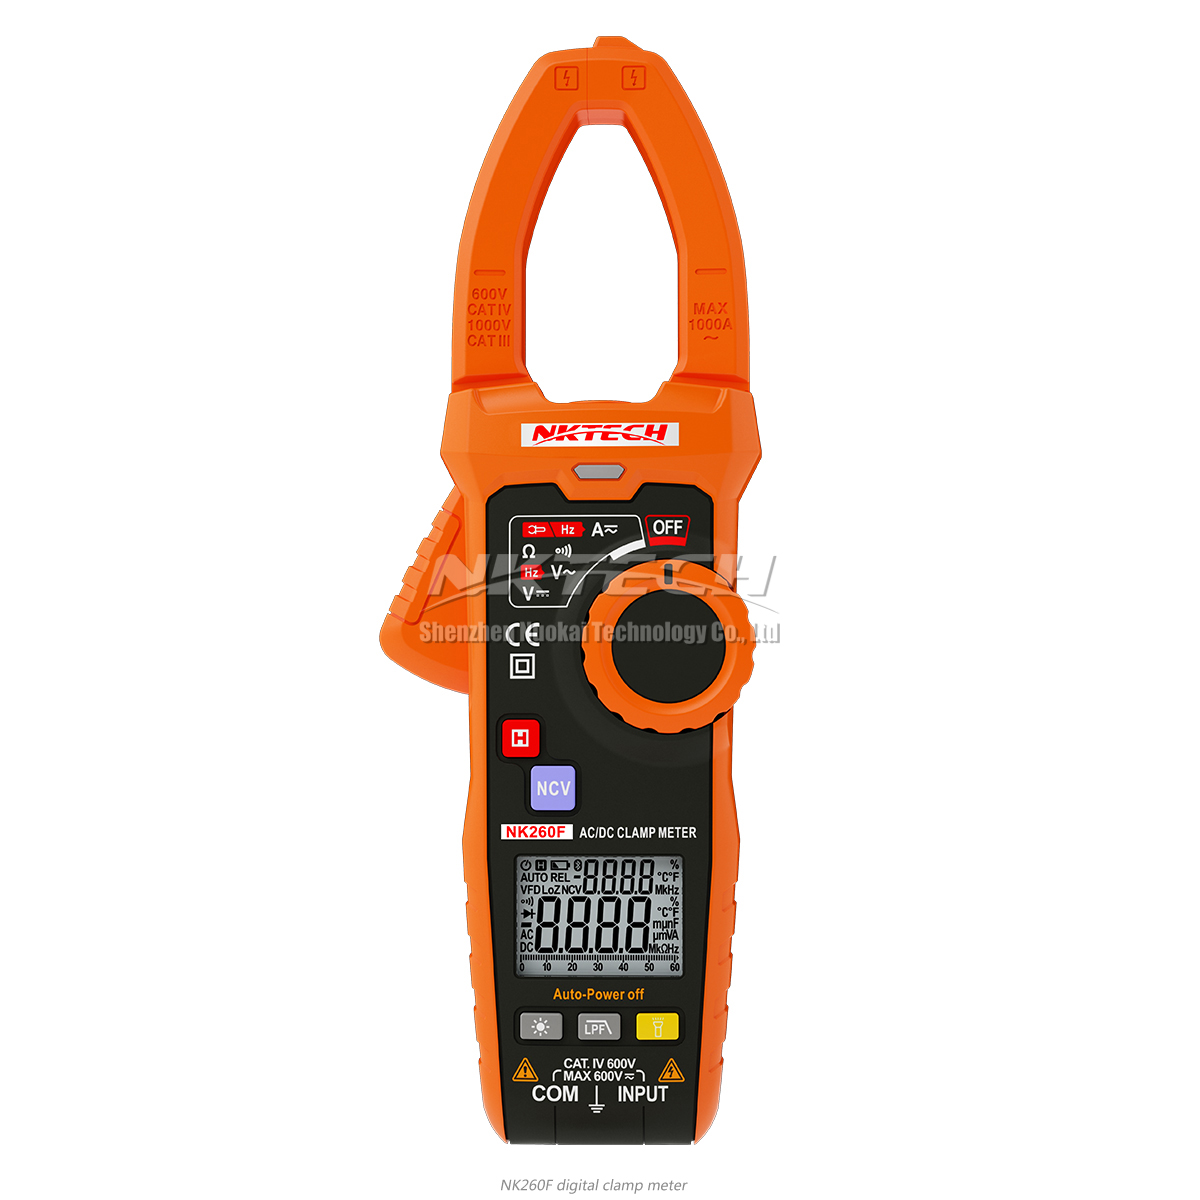 NKTECH NK260F VDF Smart Digital Clamp Meter LPF AC/DC V DCA Frequency Capacitance NCV Automatic Dual Display V/Ohm/A Auto Scan